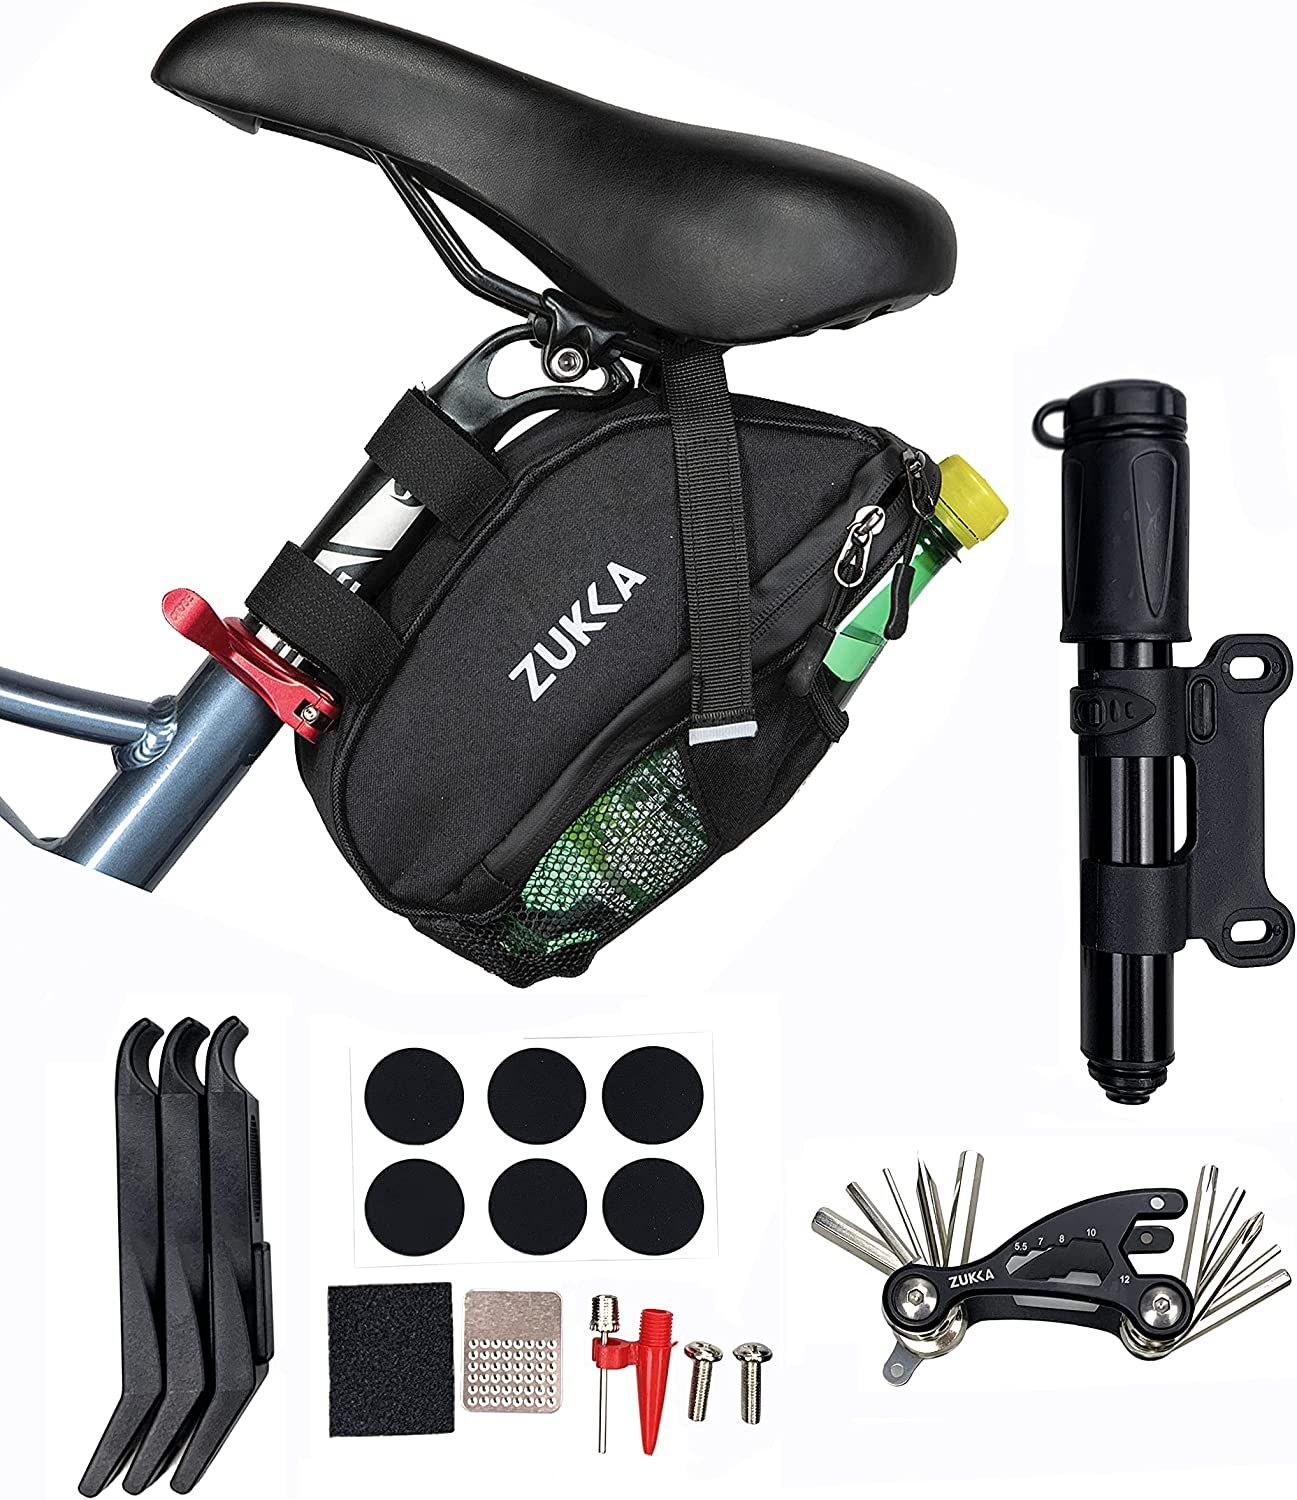 SEAL limited product MEGHNA Bike Seat Bag Kit Mul Includes For Bicycle Frame OFFicial mail order